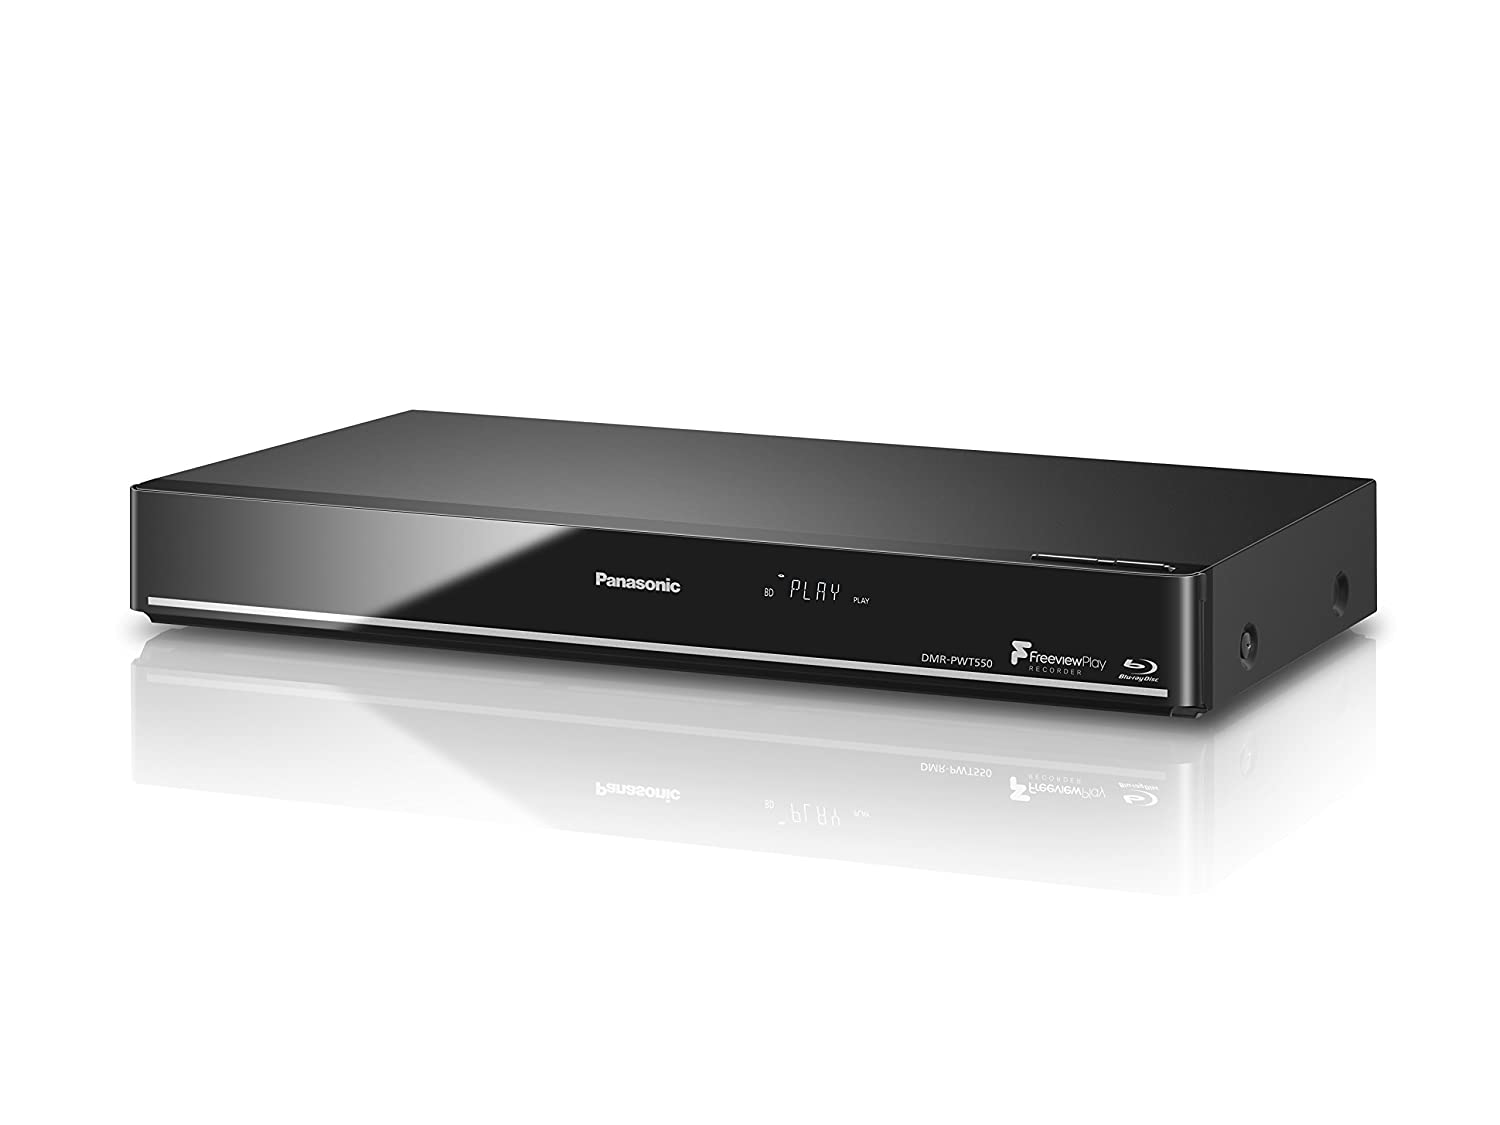 Panasonic Smart Blu-Ray Player with 500 GB HDD Recorder and Freeview Play